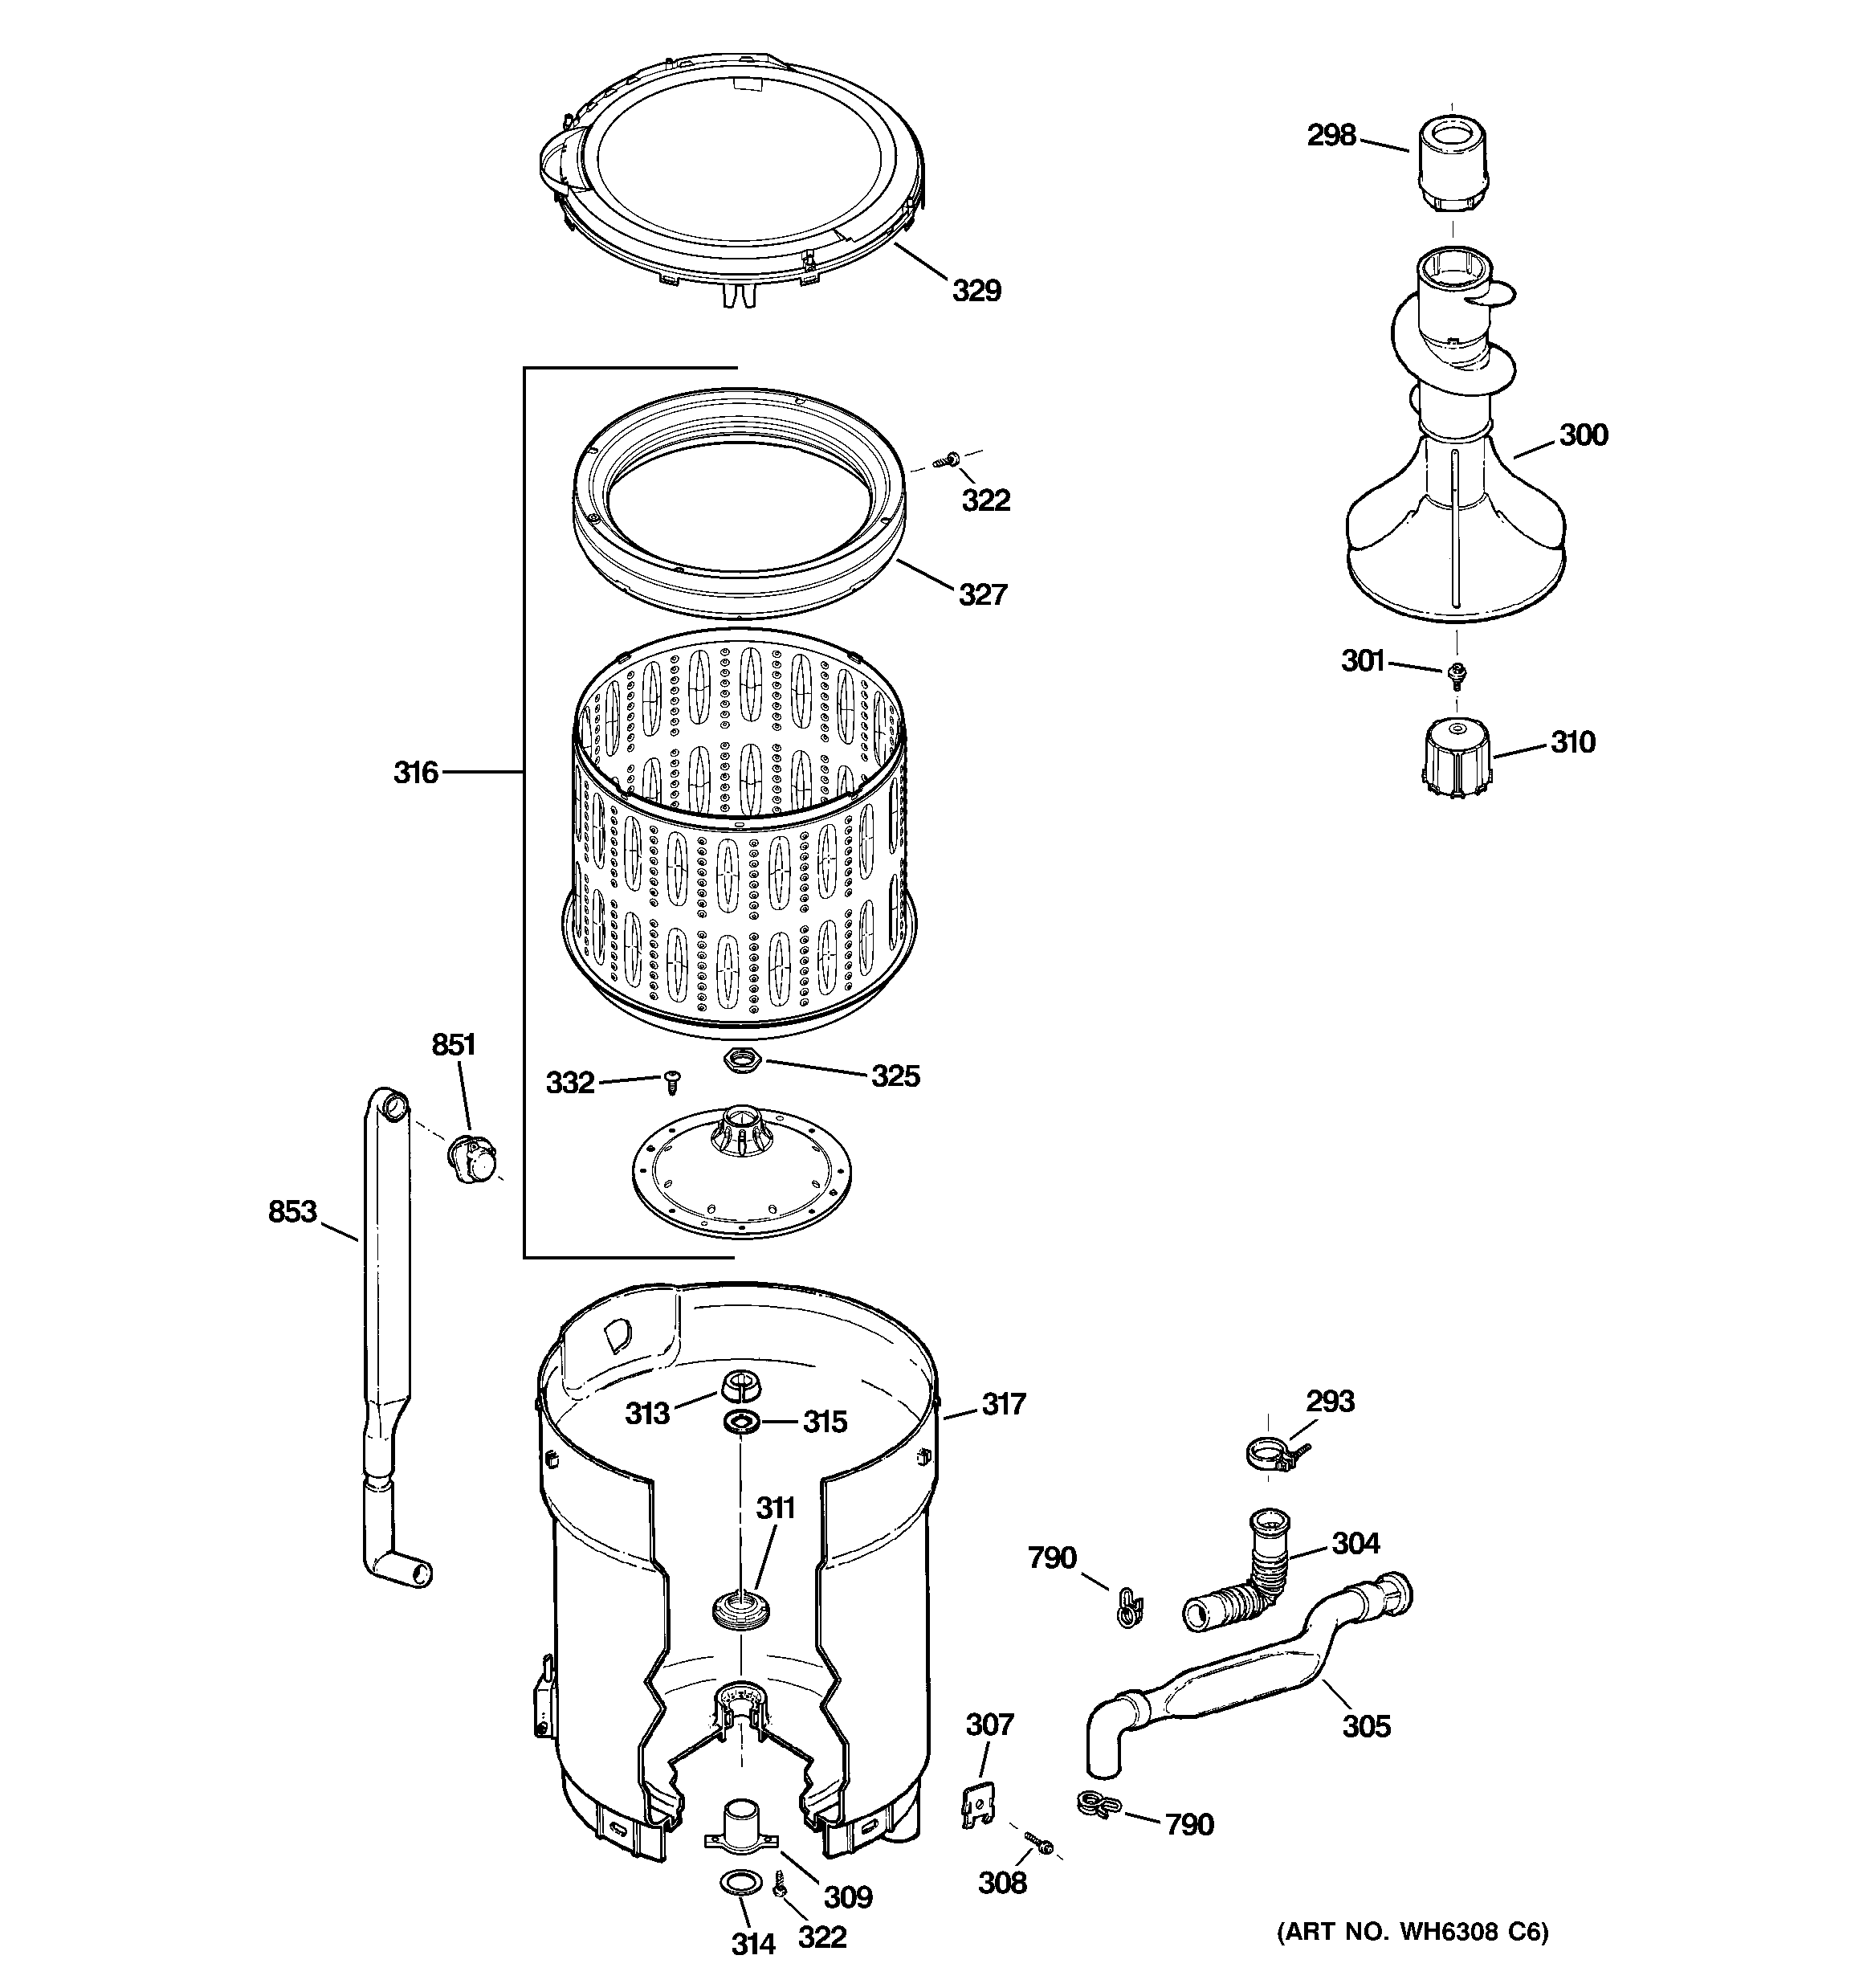 TUB, BASKET & AGITATOR Diagram & Parts List for Model